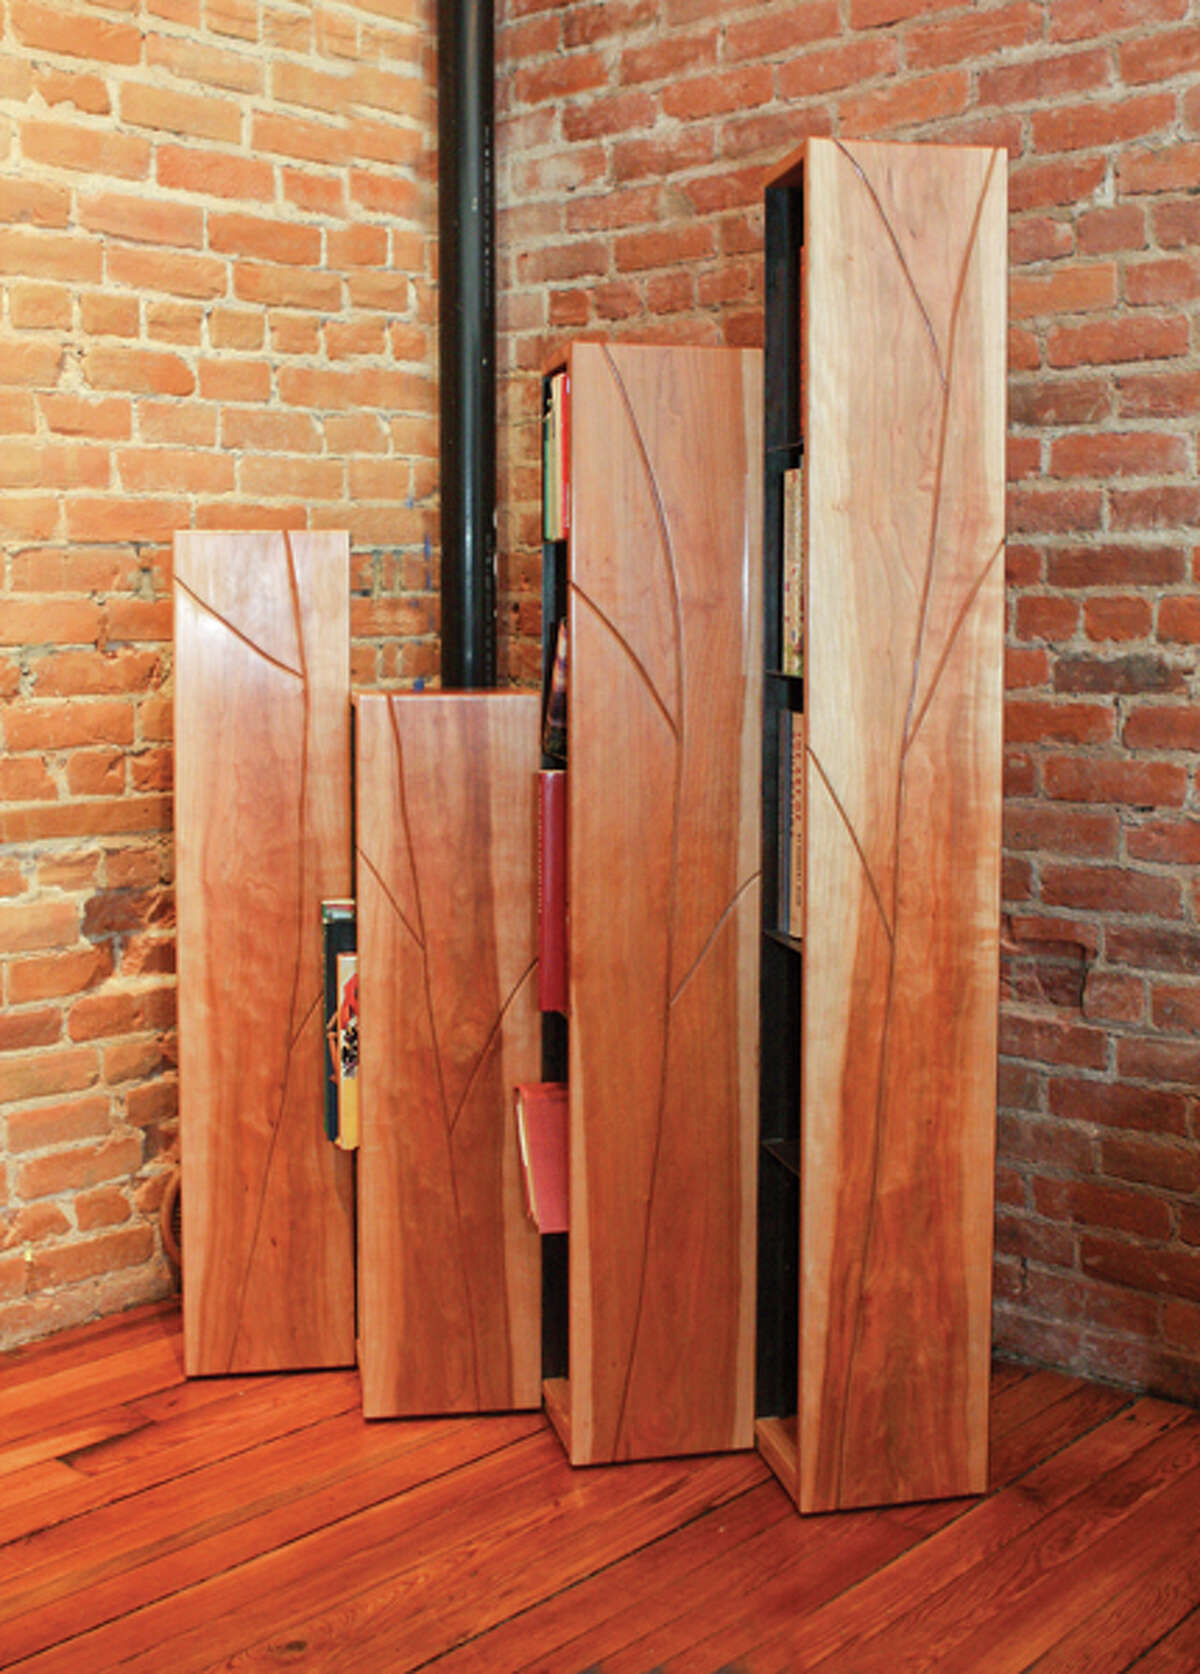 Fine furniture maker Jim Smith creates materpieces of functional art from his woodworking shop in Schuylerville. Pictured above, Smith's hinged, foldable set of bookcases,